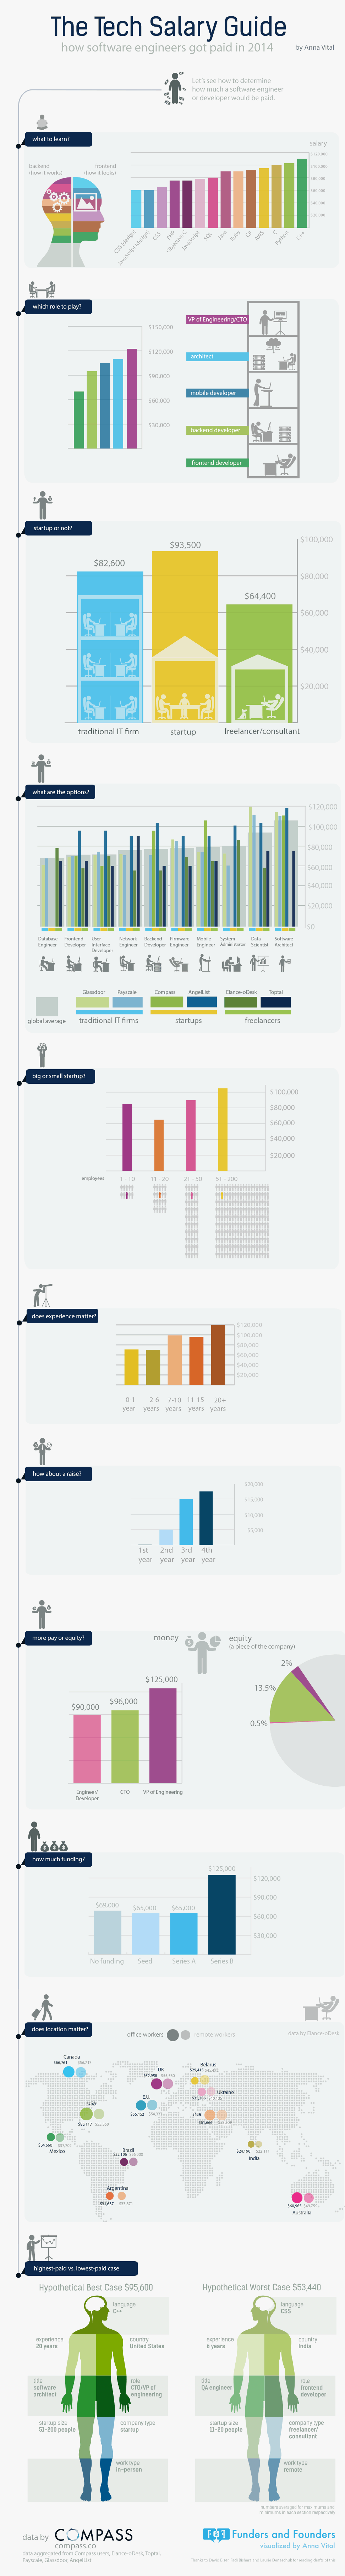 software engineer salary guide 2014